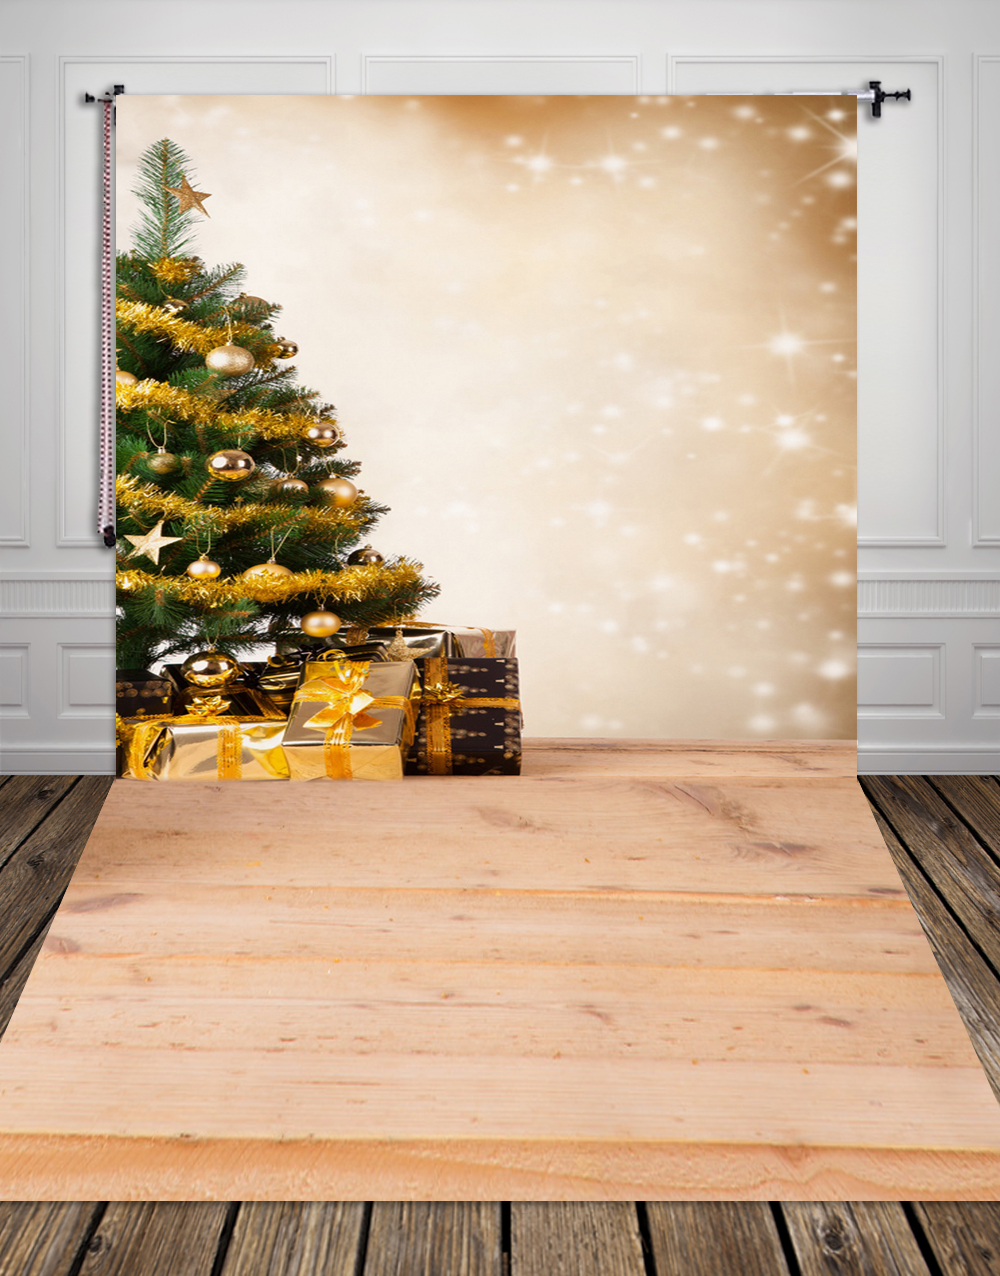 Vertical Hot Sale Art fabric Photo Studio Backdrops PC Painted Newborn baby Christmas tree gifts Backgrounds  XT-2276